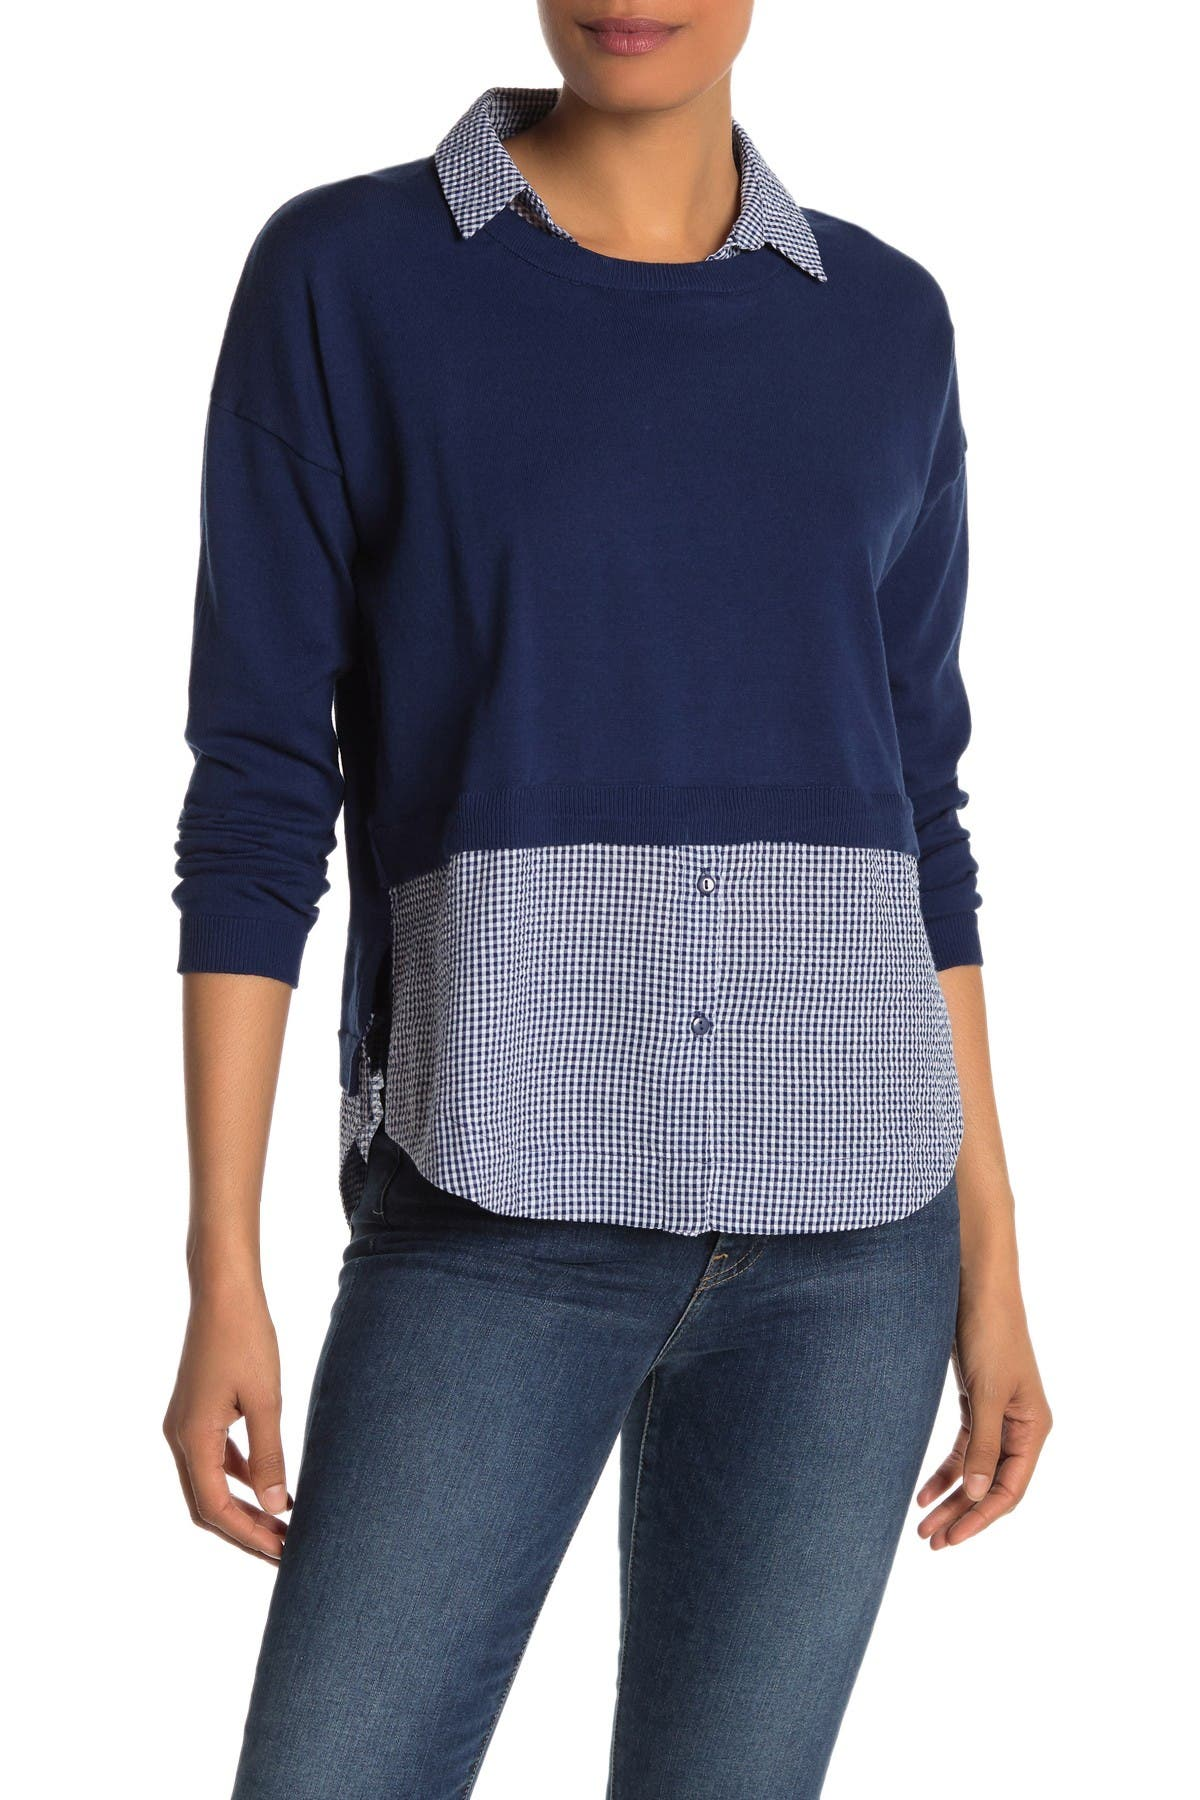 Image of Vertigo Gingham Sweater Two-Fer Top